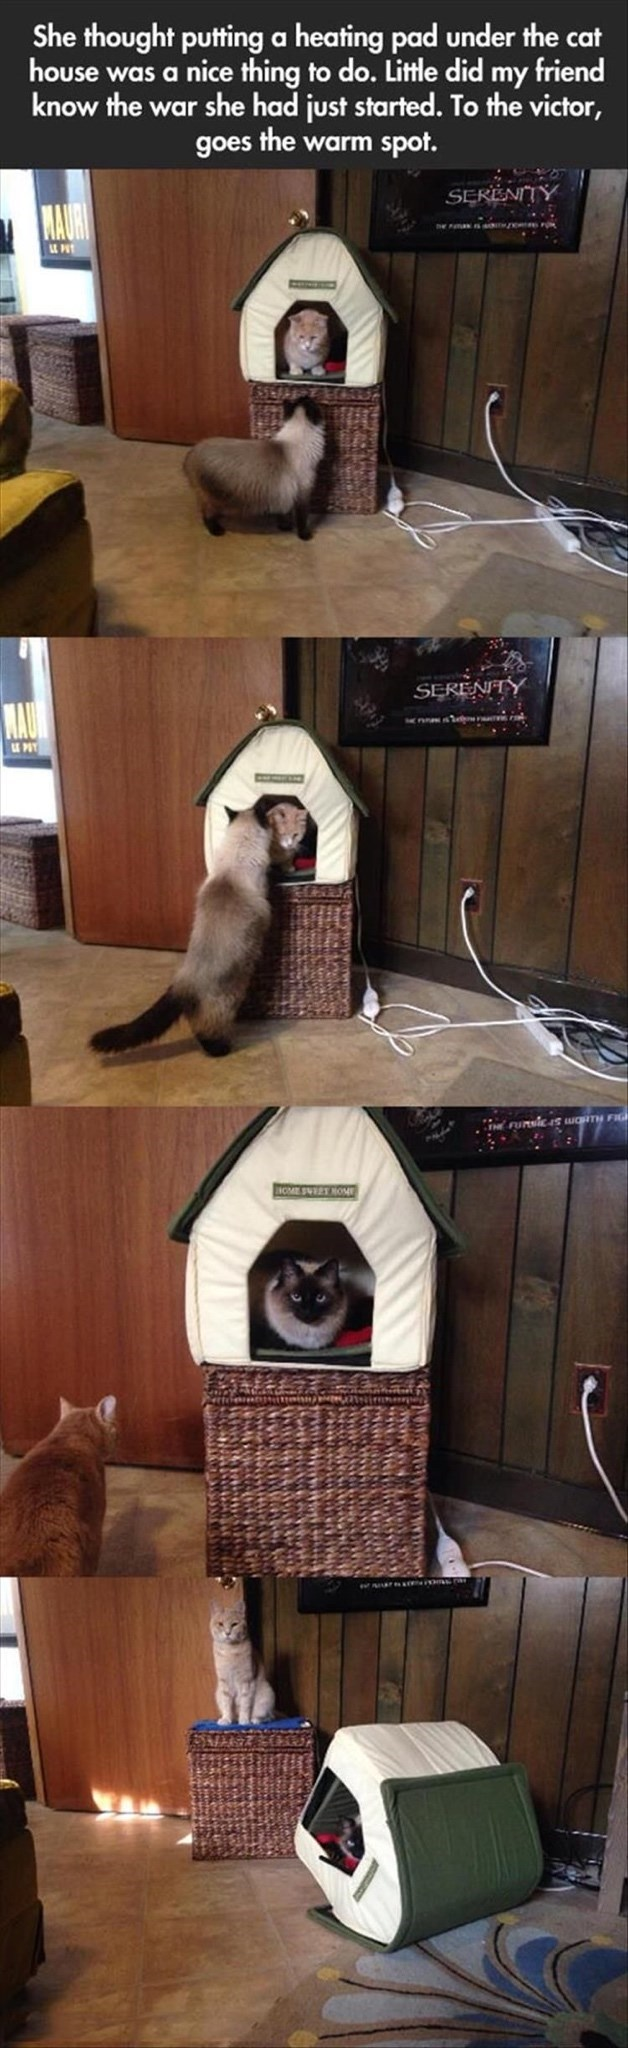 Cat - She thought putting a heating pad under the cat house was a nice thing to do. Little did my friend know the war she had just started. To the victor, goes the warm spot. SERENITY MAUR SERENITY MAU (Funsic WORTH FIG HOME SVEET NOME